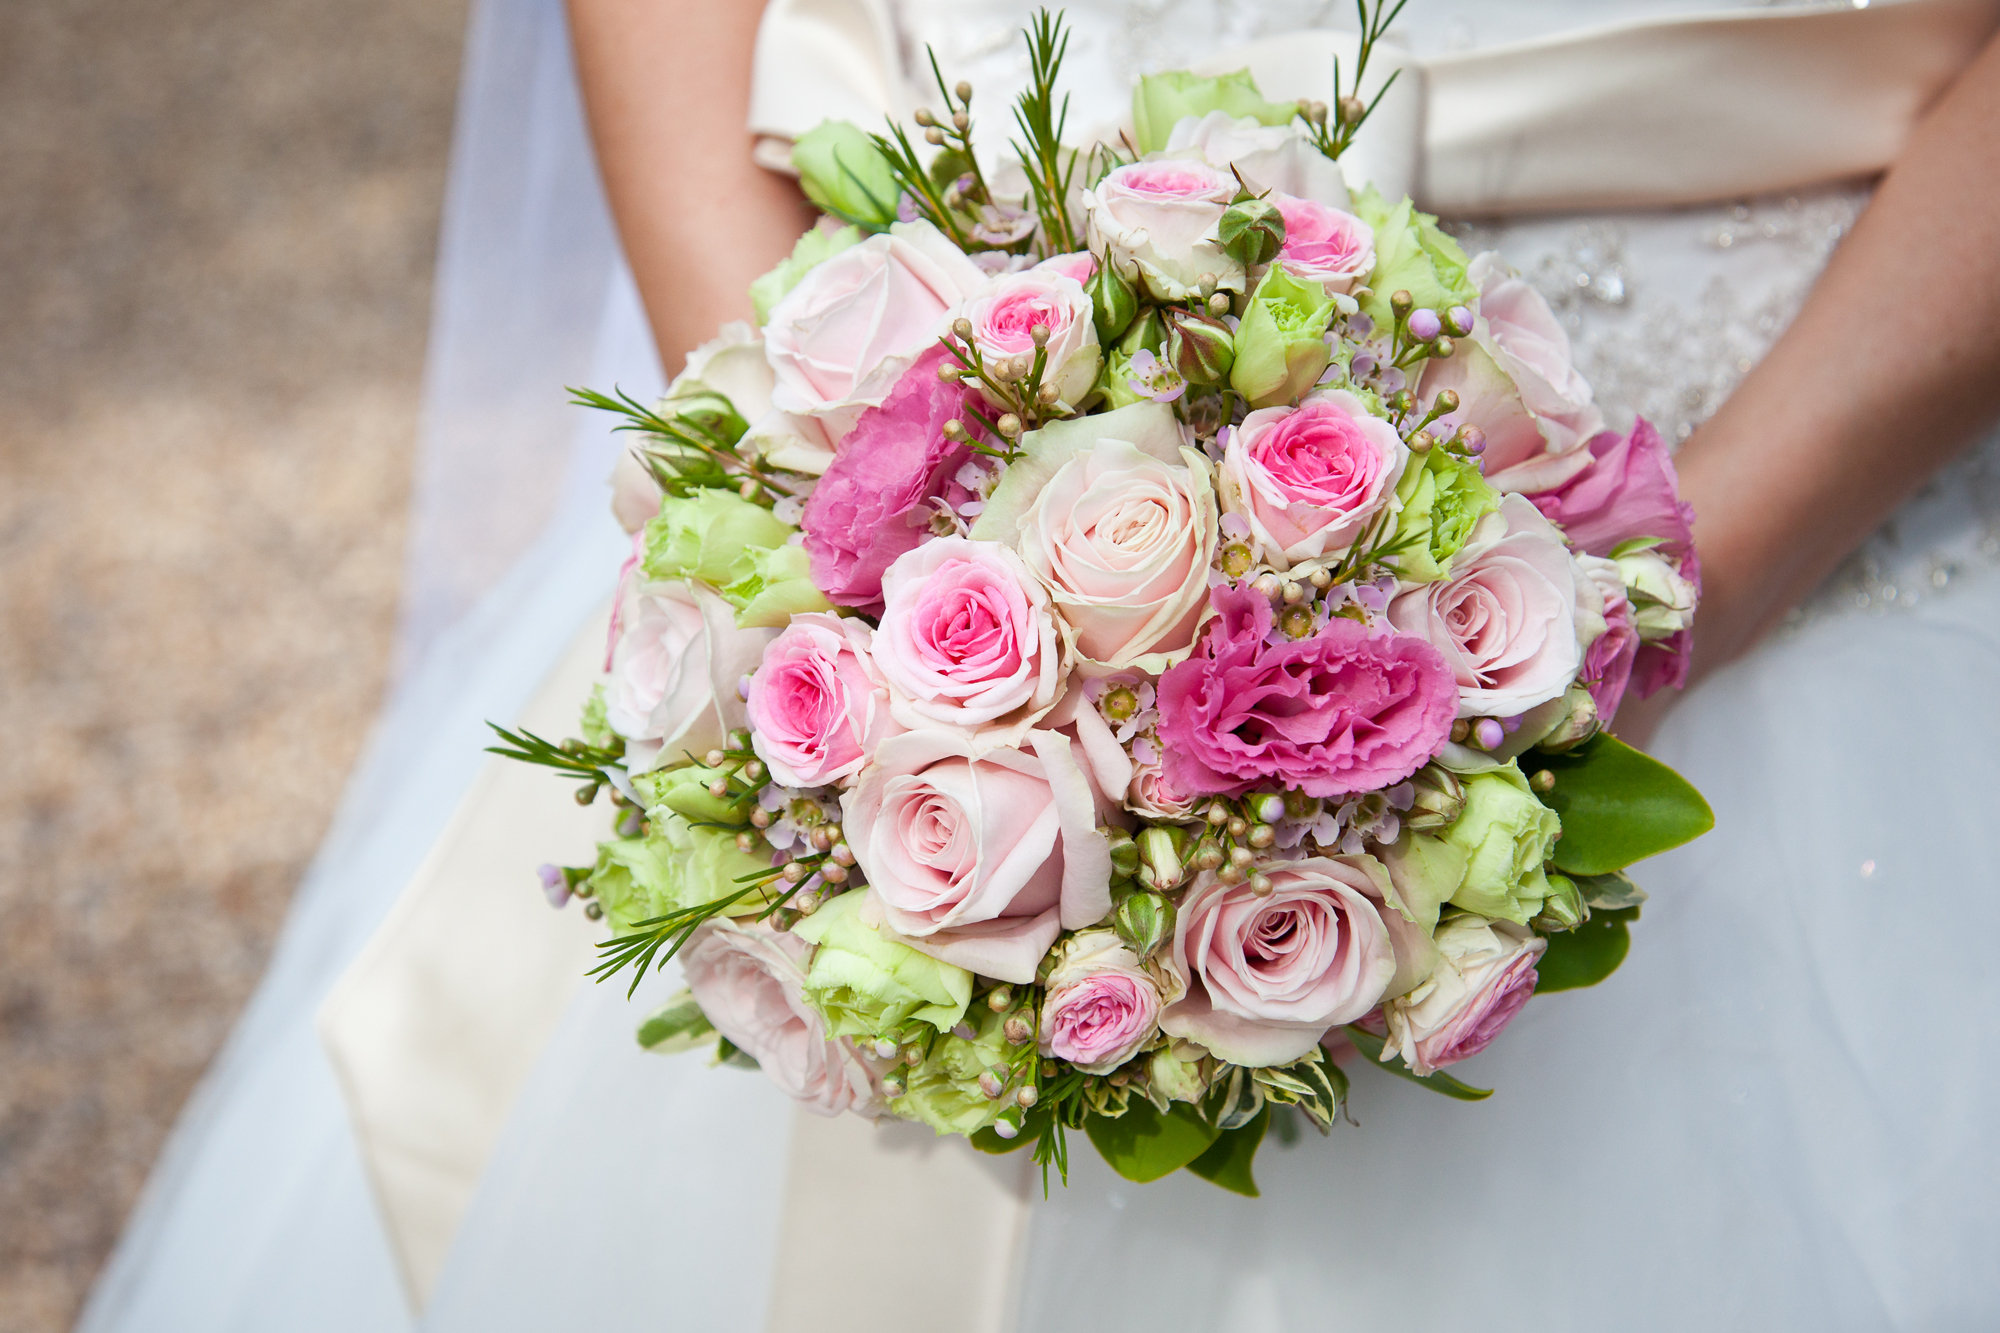 Wedding Flowers: wedding flowers in uk